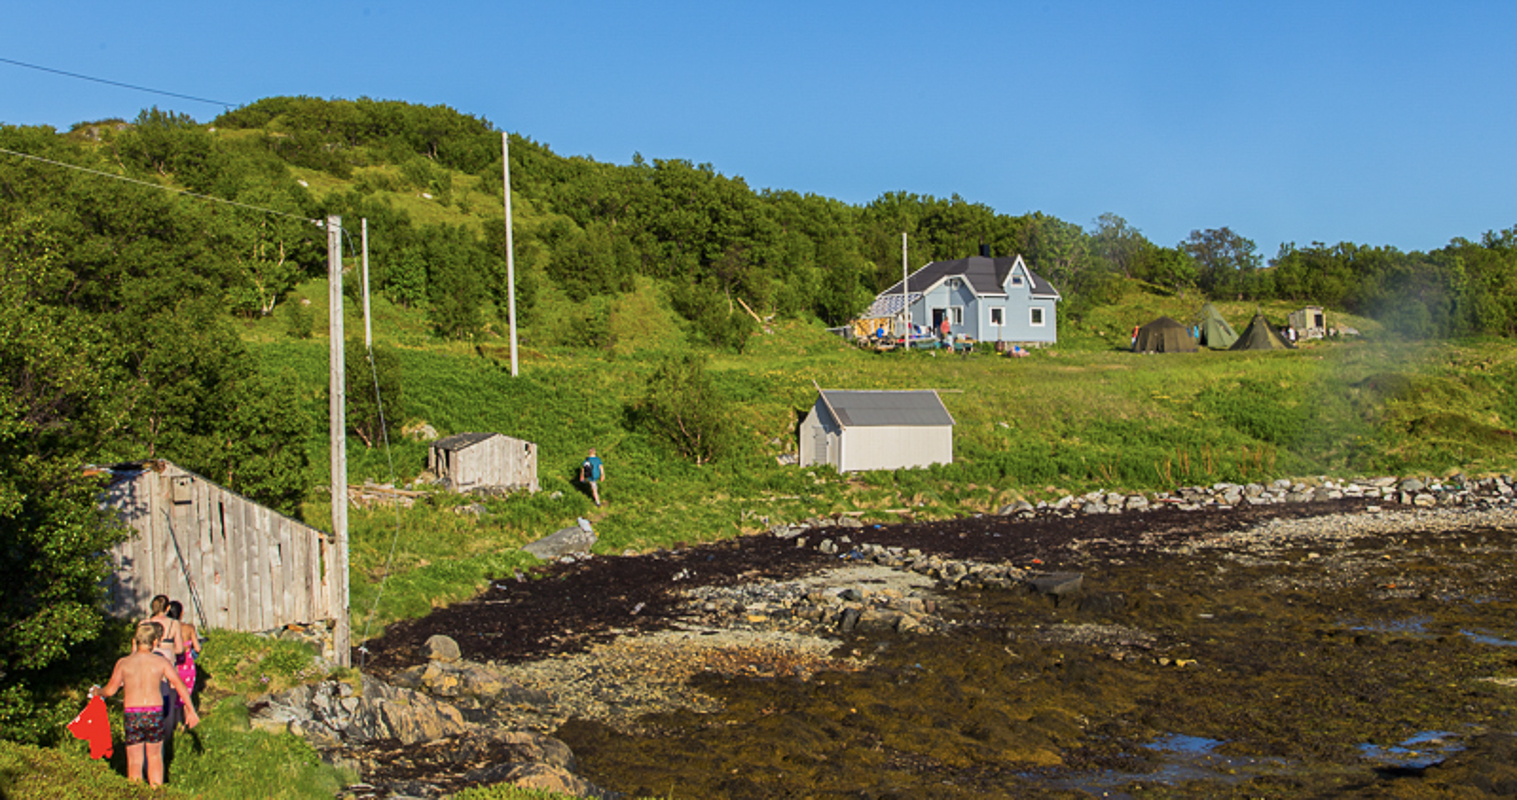 The farm in Hersøya where Jan Baalsrud found shelter (c) Tine Hagelin